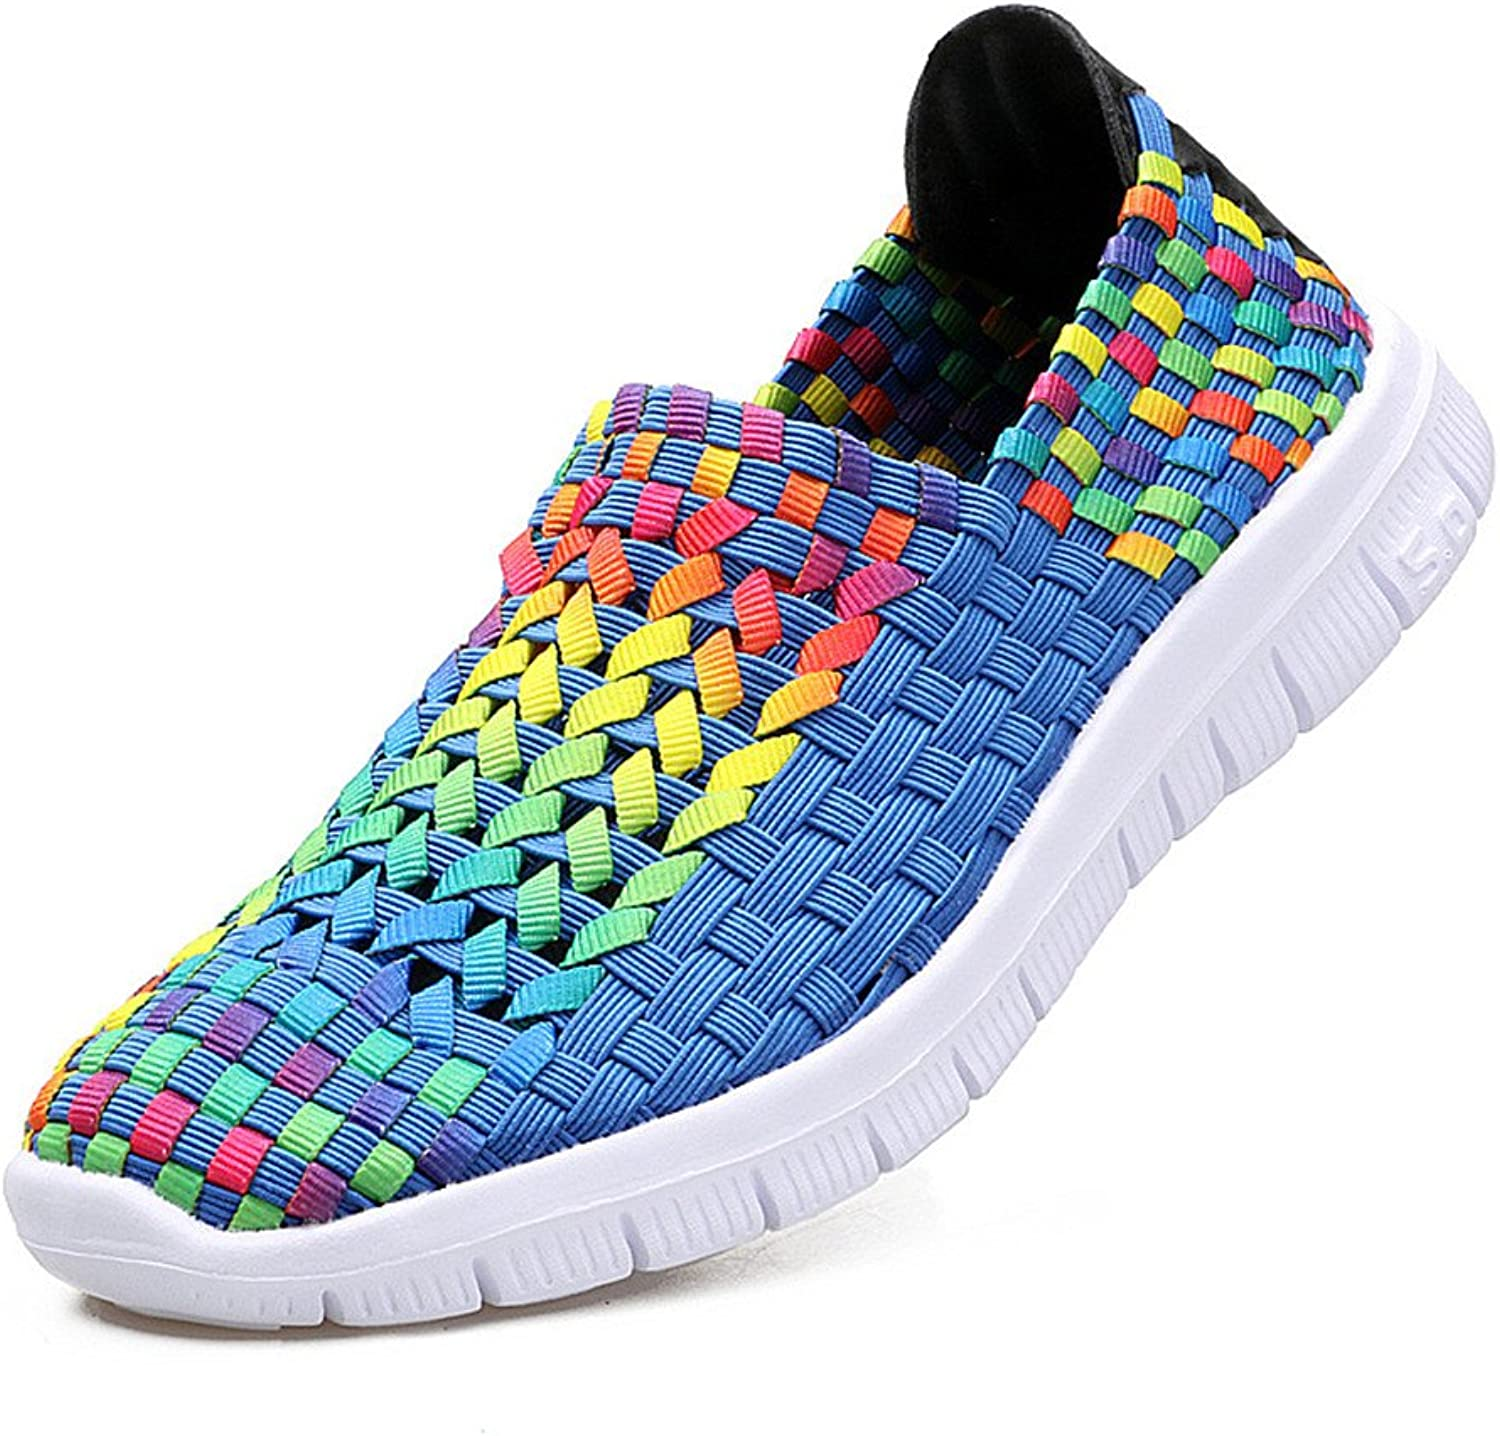 Unyielding1 Female Hand-Woven shoes Women's shoes Korean Mother shoes Breathable Elastic Sports Floor shoes